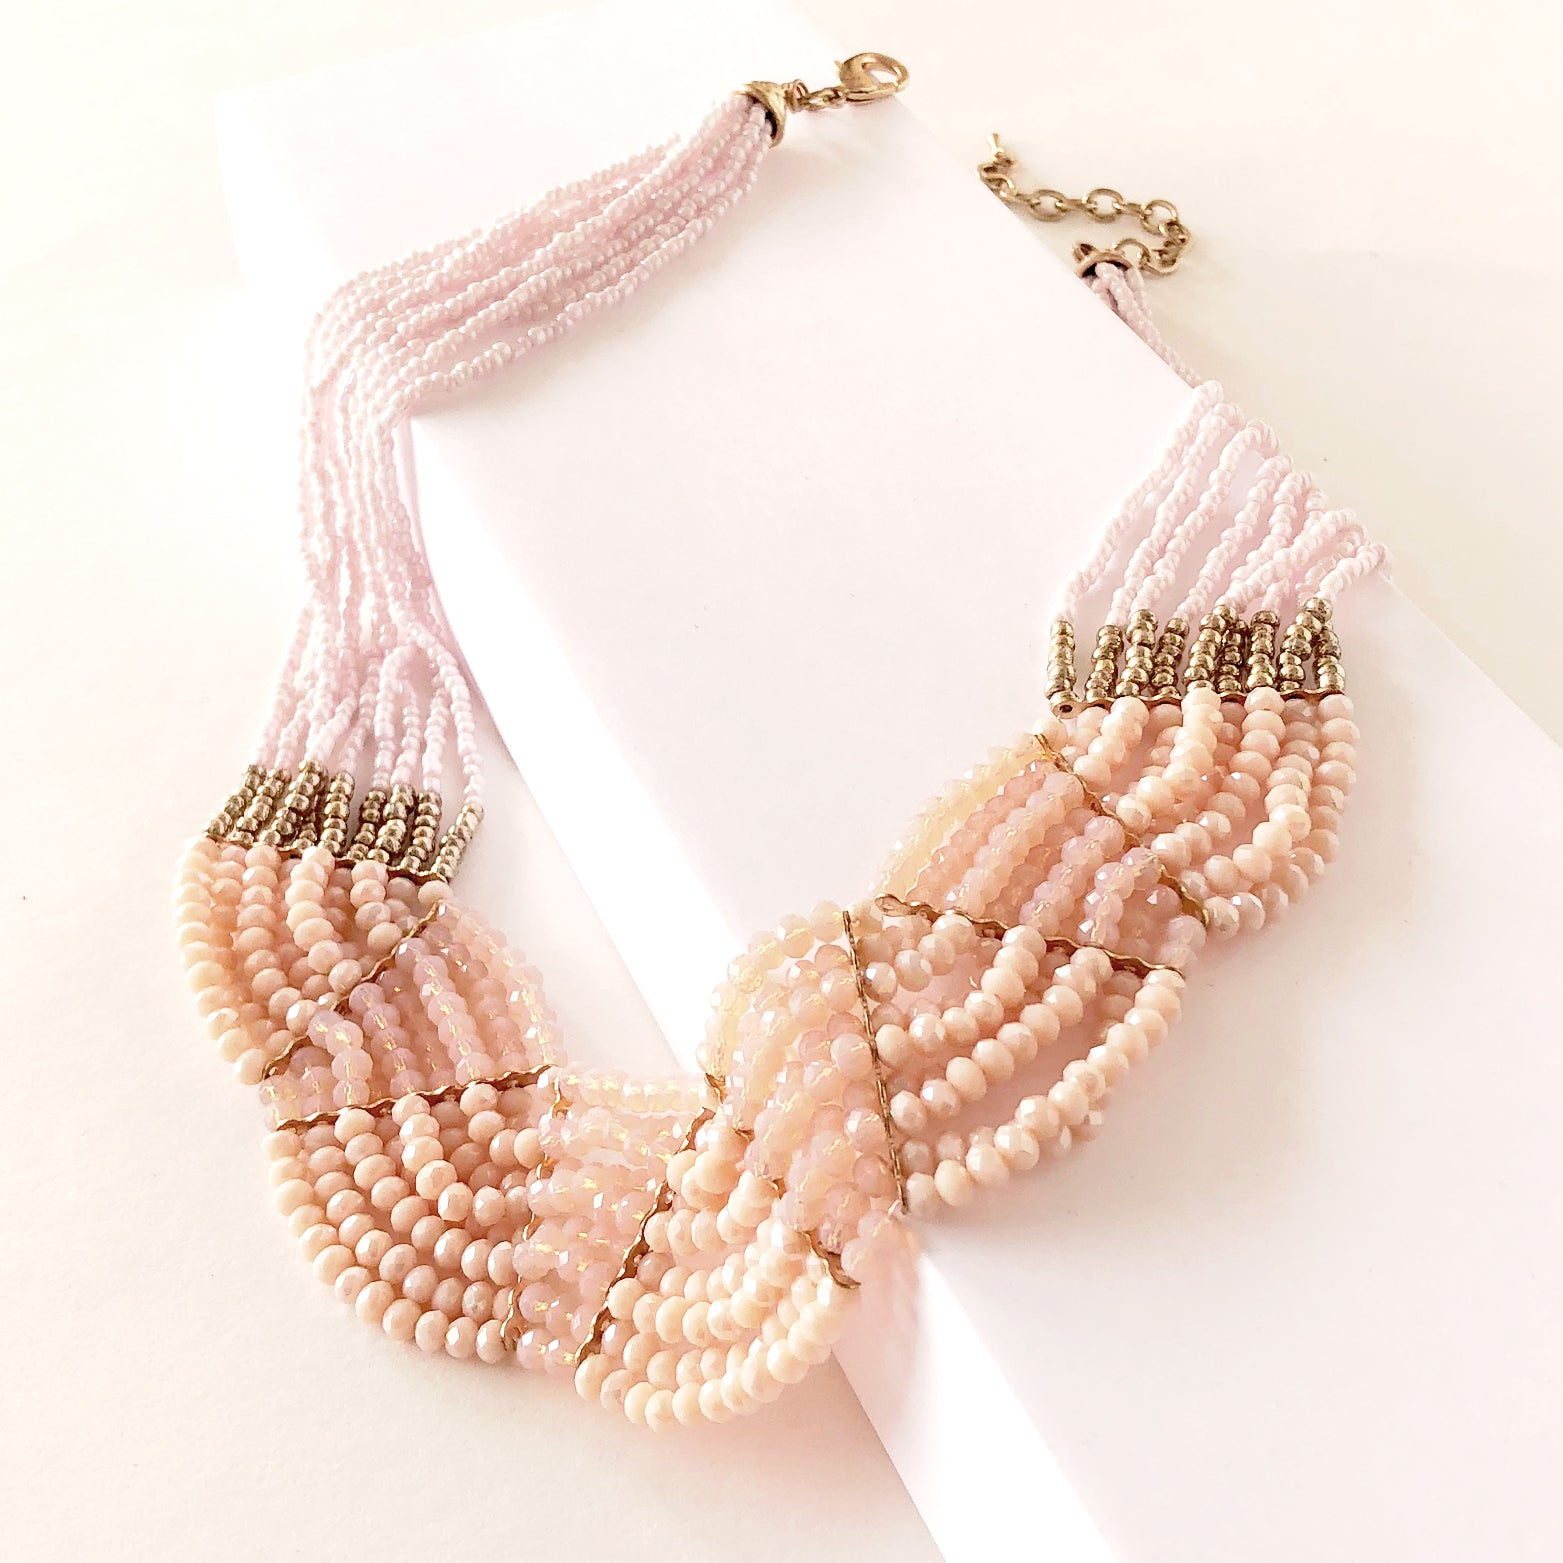 Scalloped Glass Beads Necklace